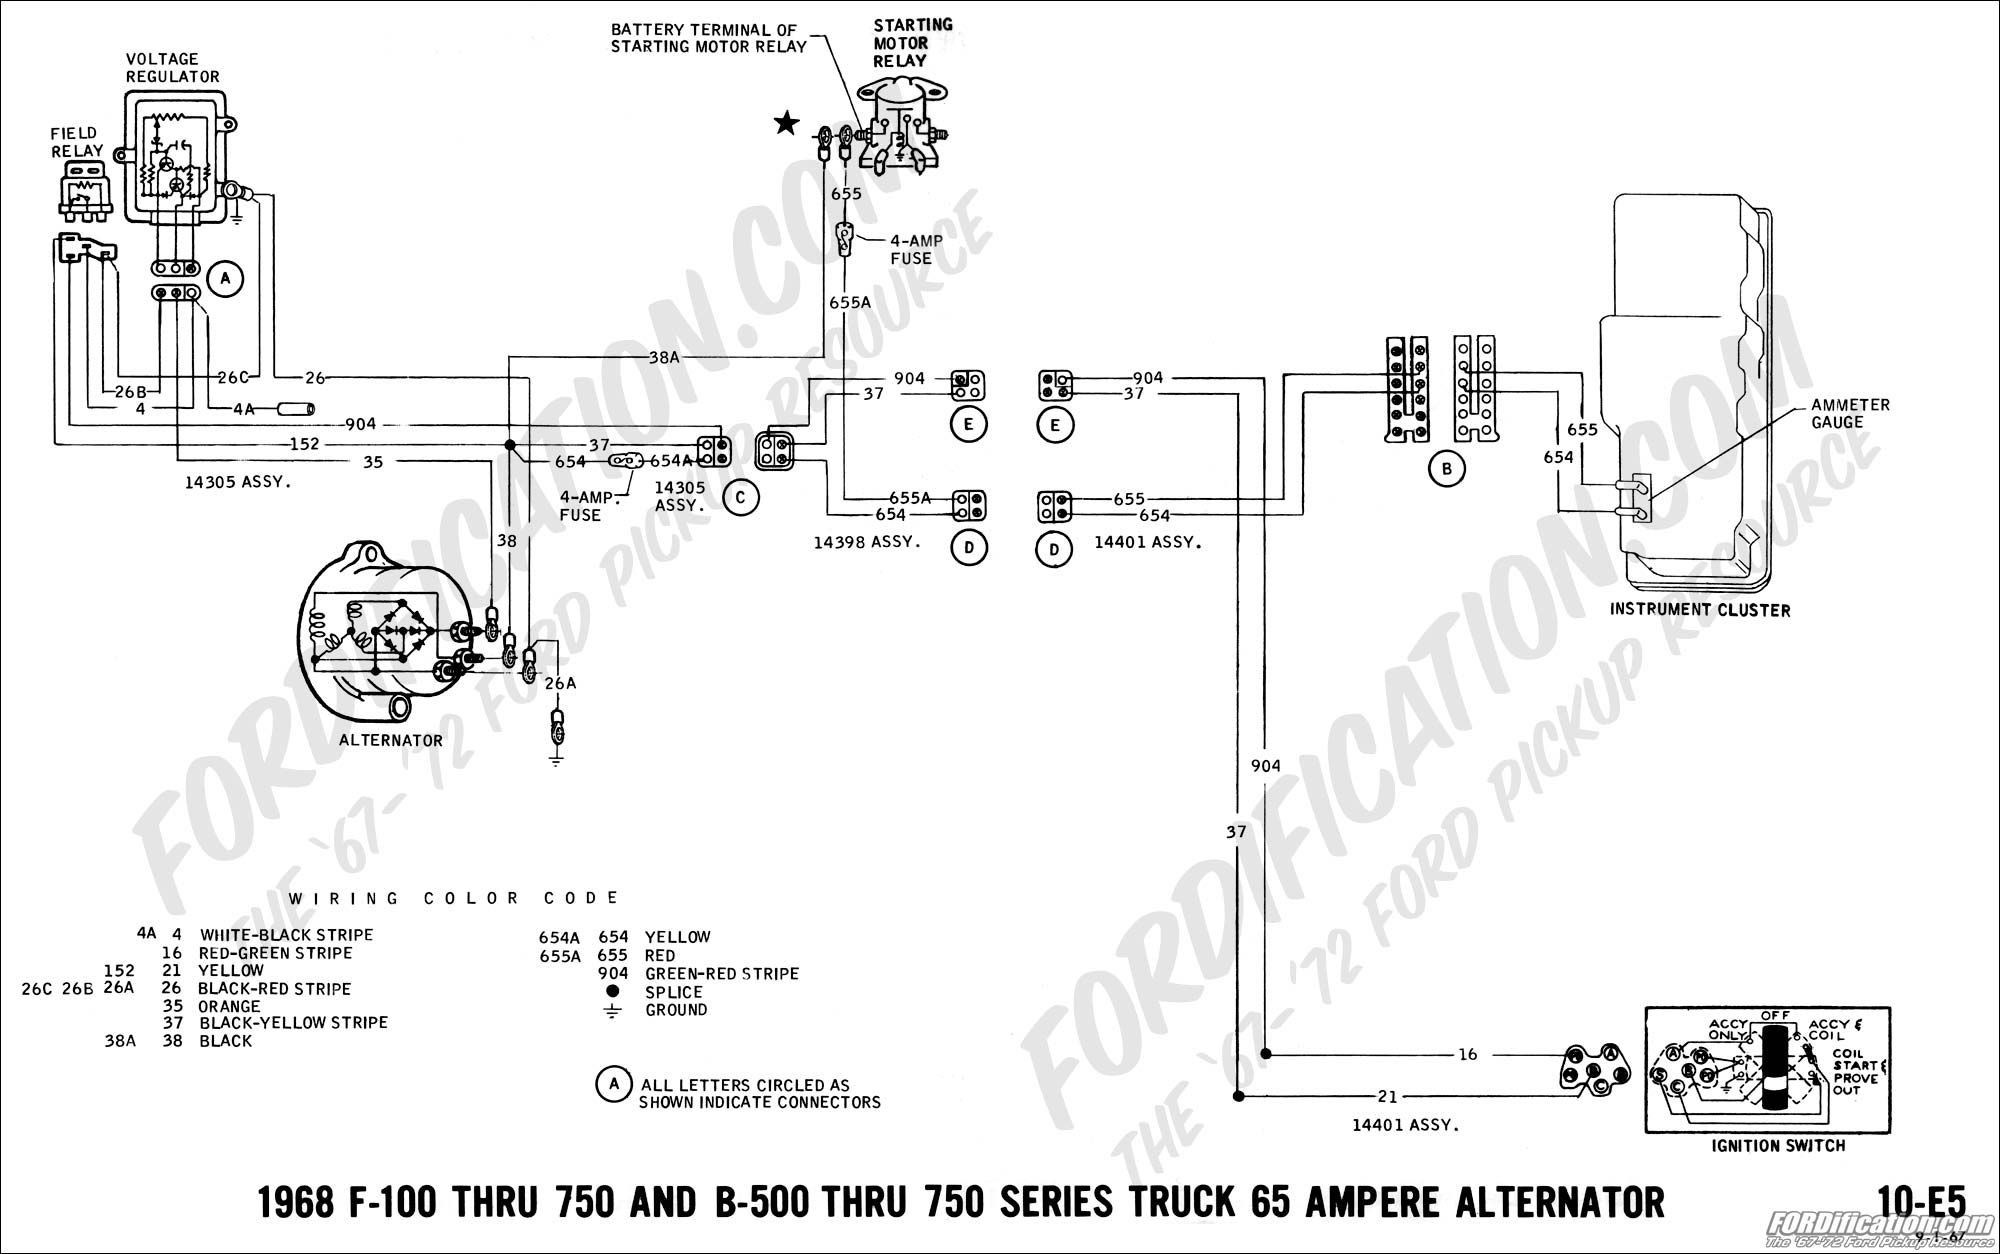 Unique Wiring Diagram Ac Split Mitsubishi Con Imagenes